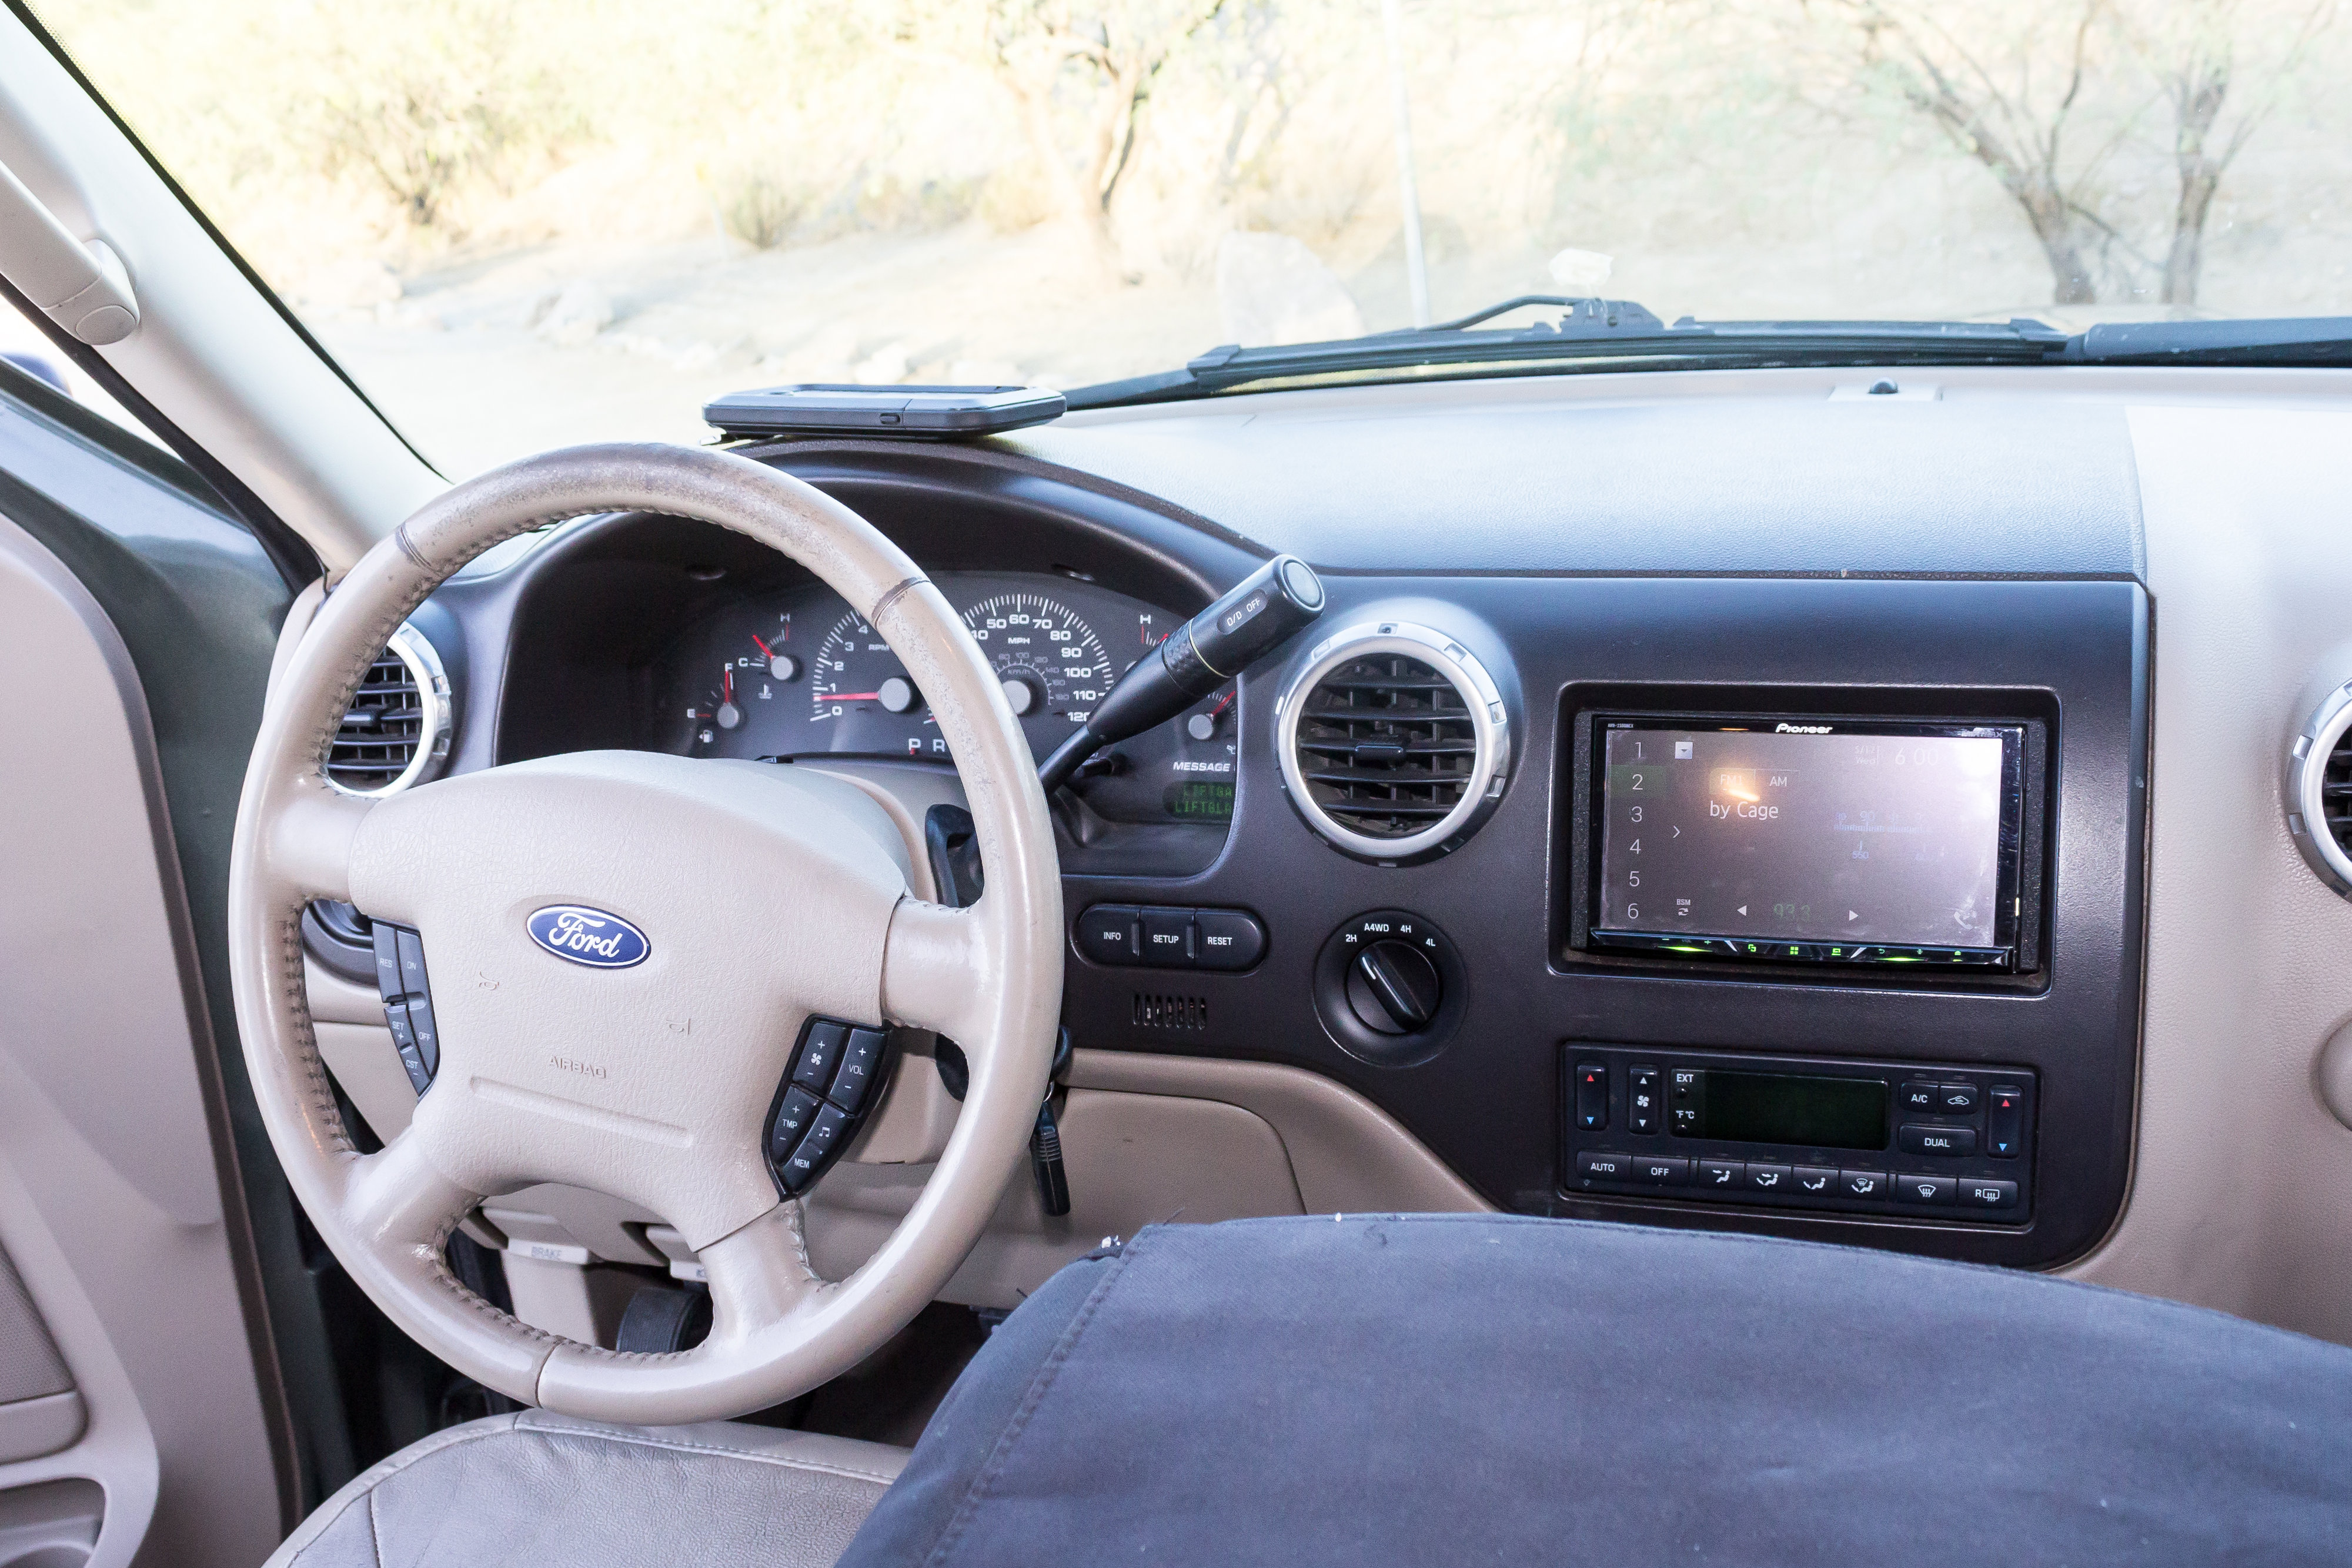 In-dash navigation display with your smartphone, and Apple CarPlay / Android Play interface makes driving fun and stress-free.  . Ford Expedition Camper Van Camper Van Adventure Rig 2005